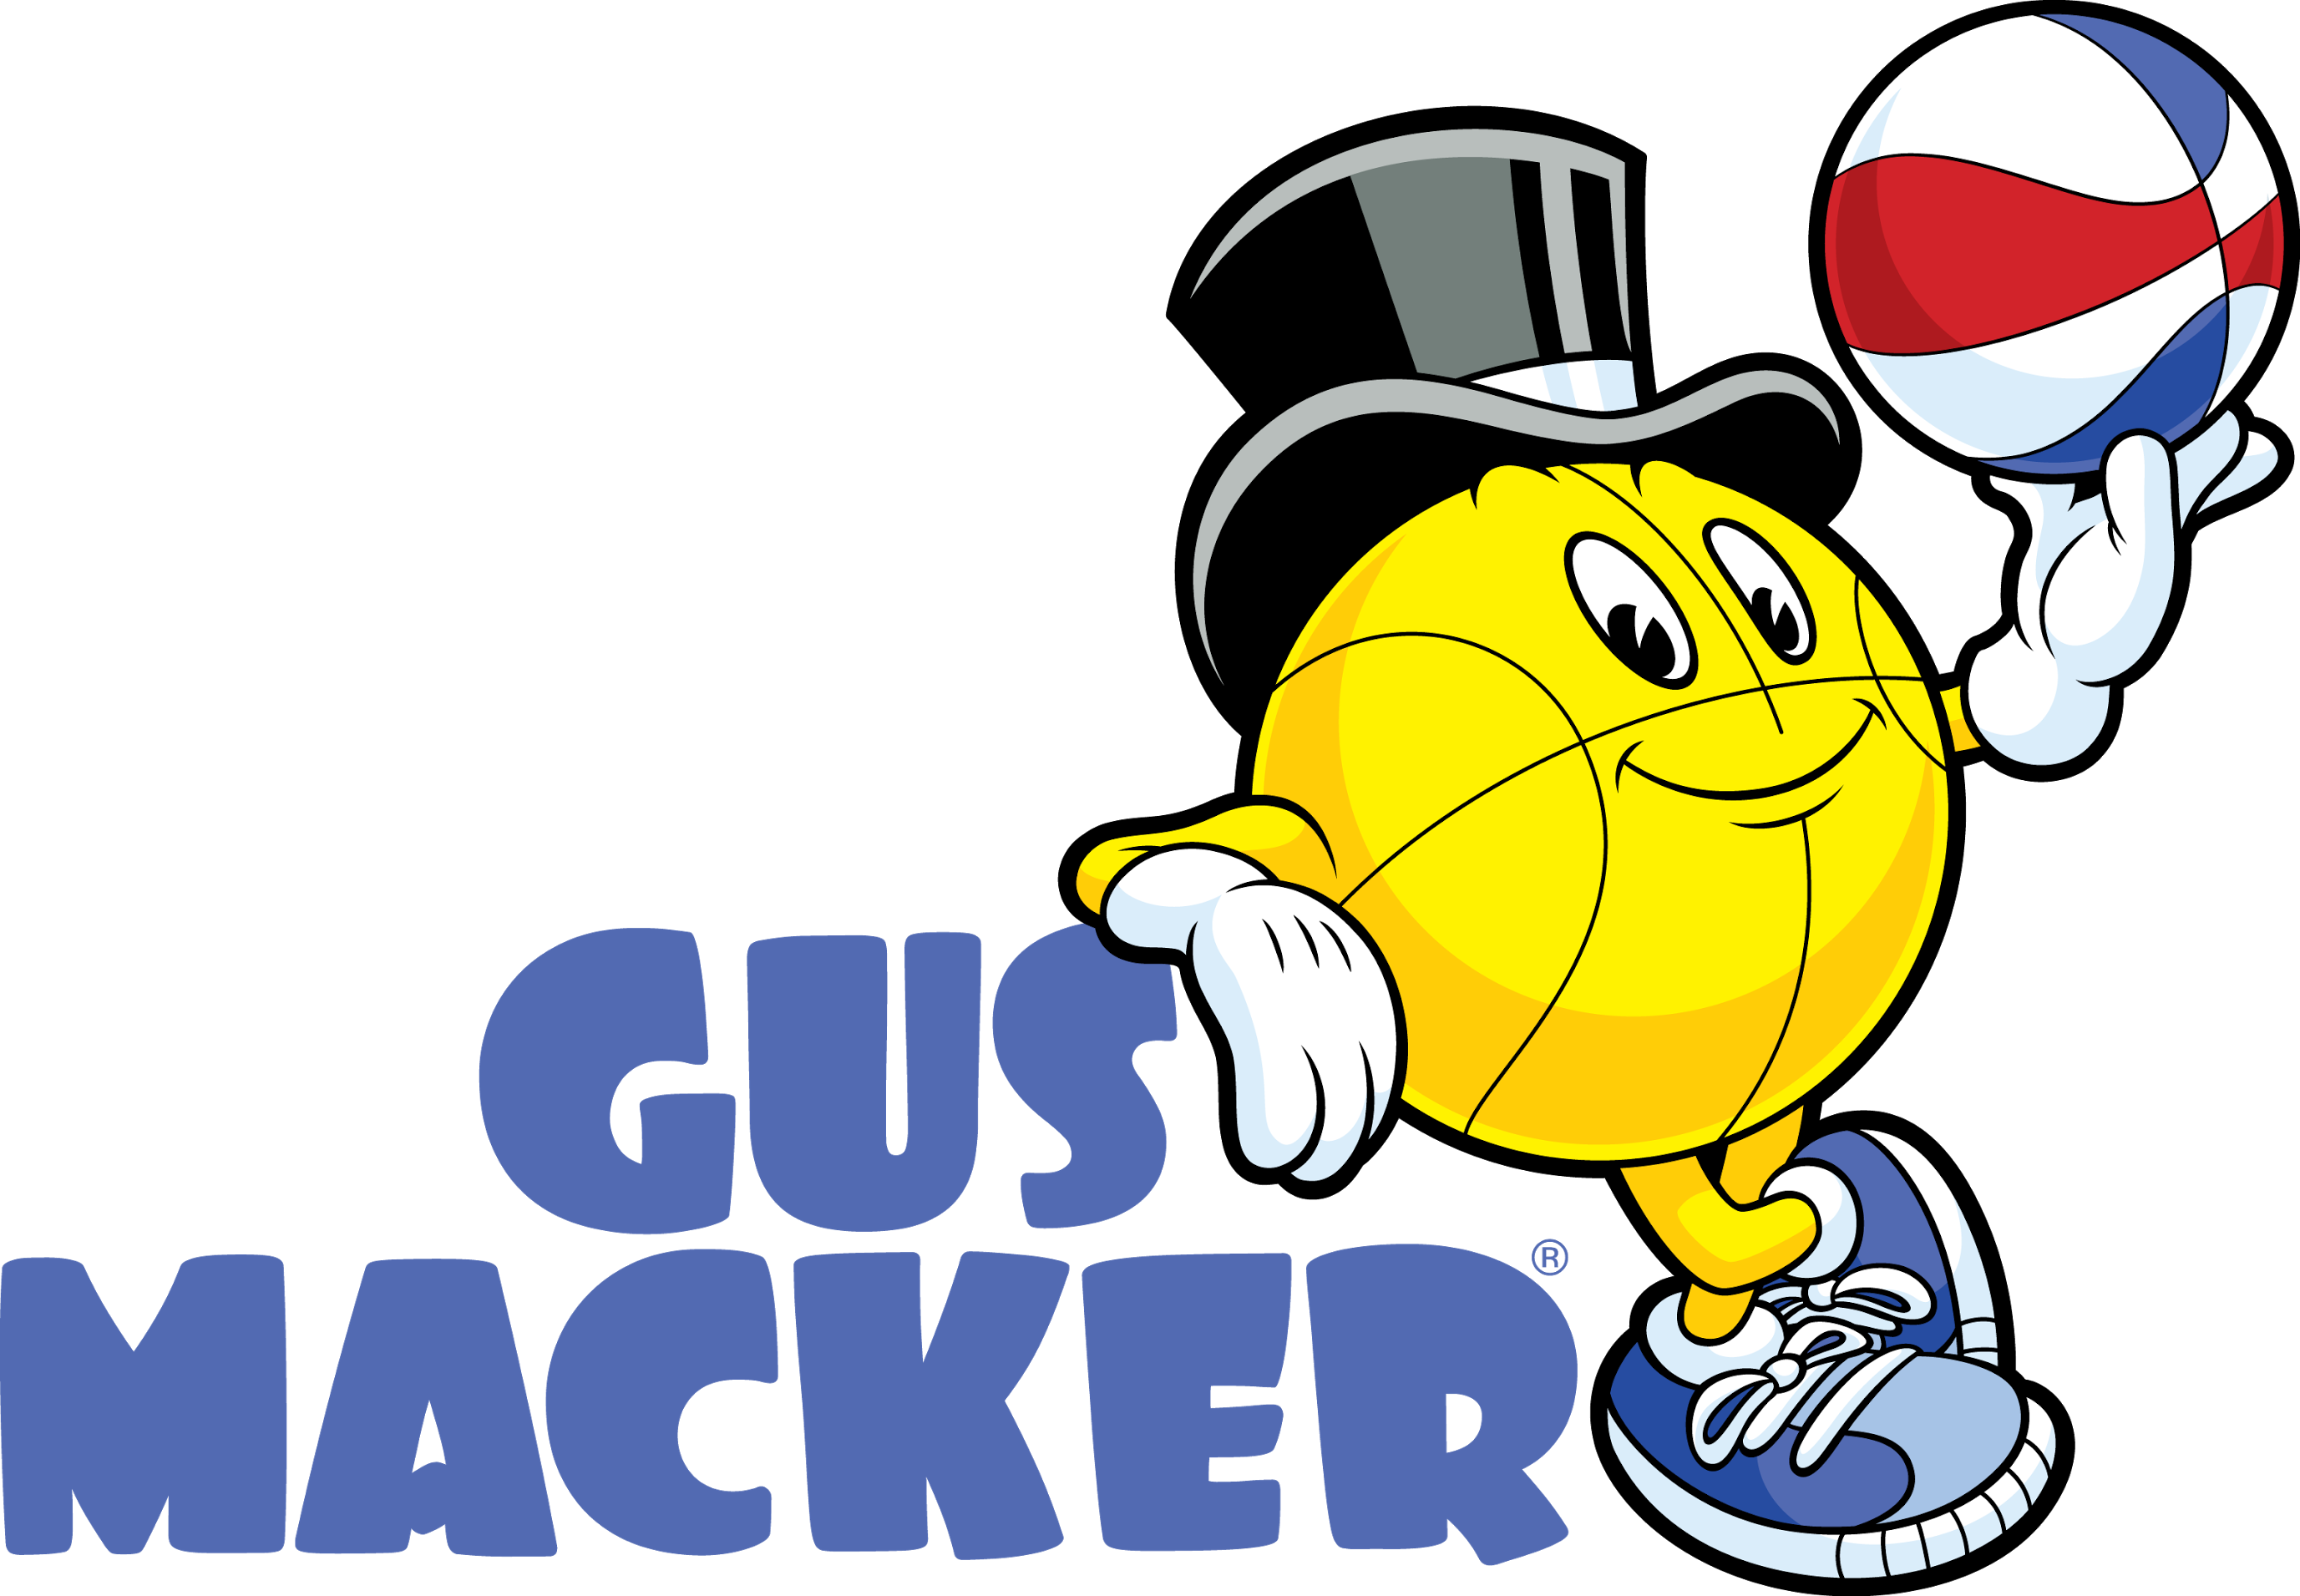 3 on 3 basketball clipart clip art Stevens Point, WI – Gus Macker 3 on 3 Basketball clip art